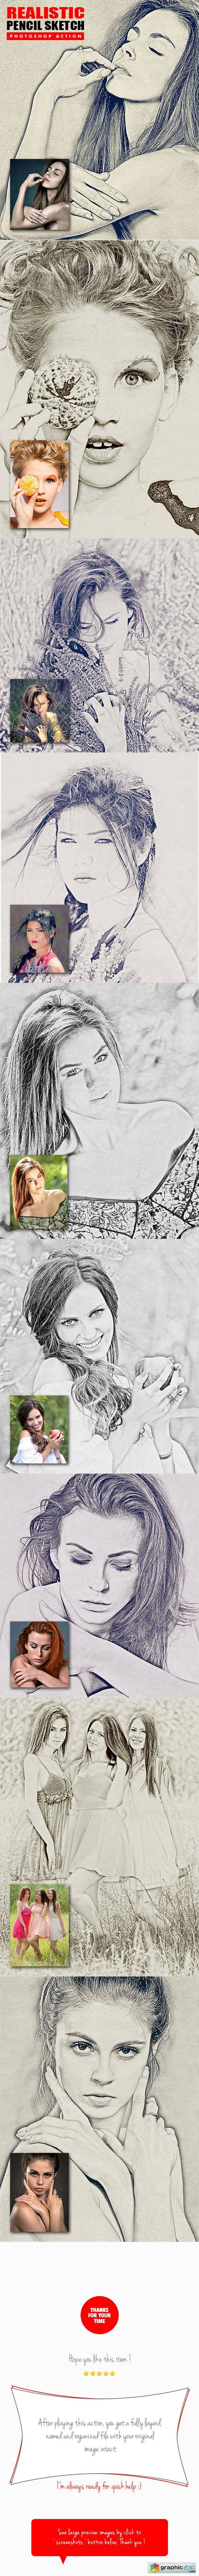 Realistic pencil sketch photoshop action